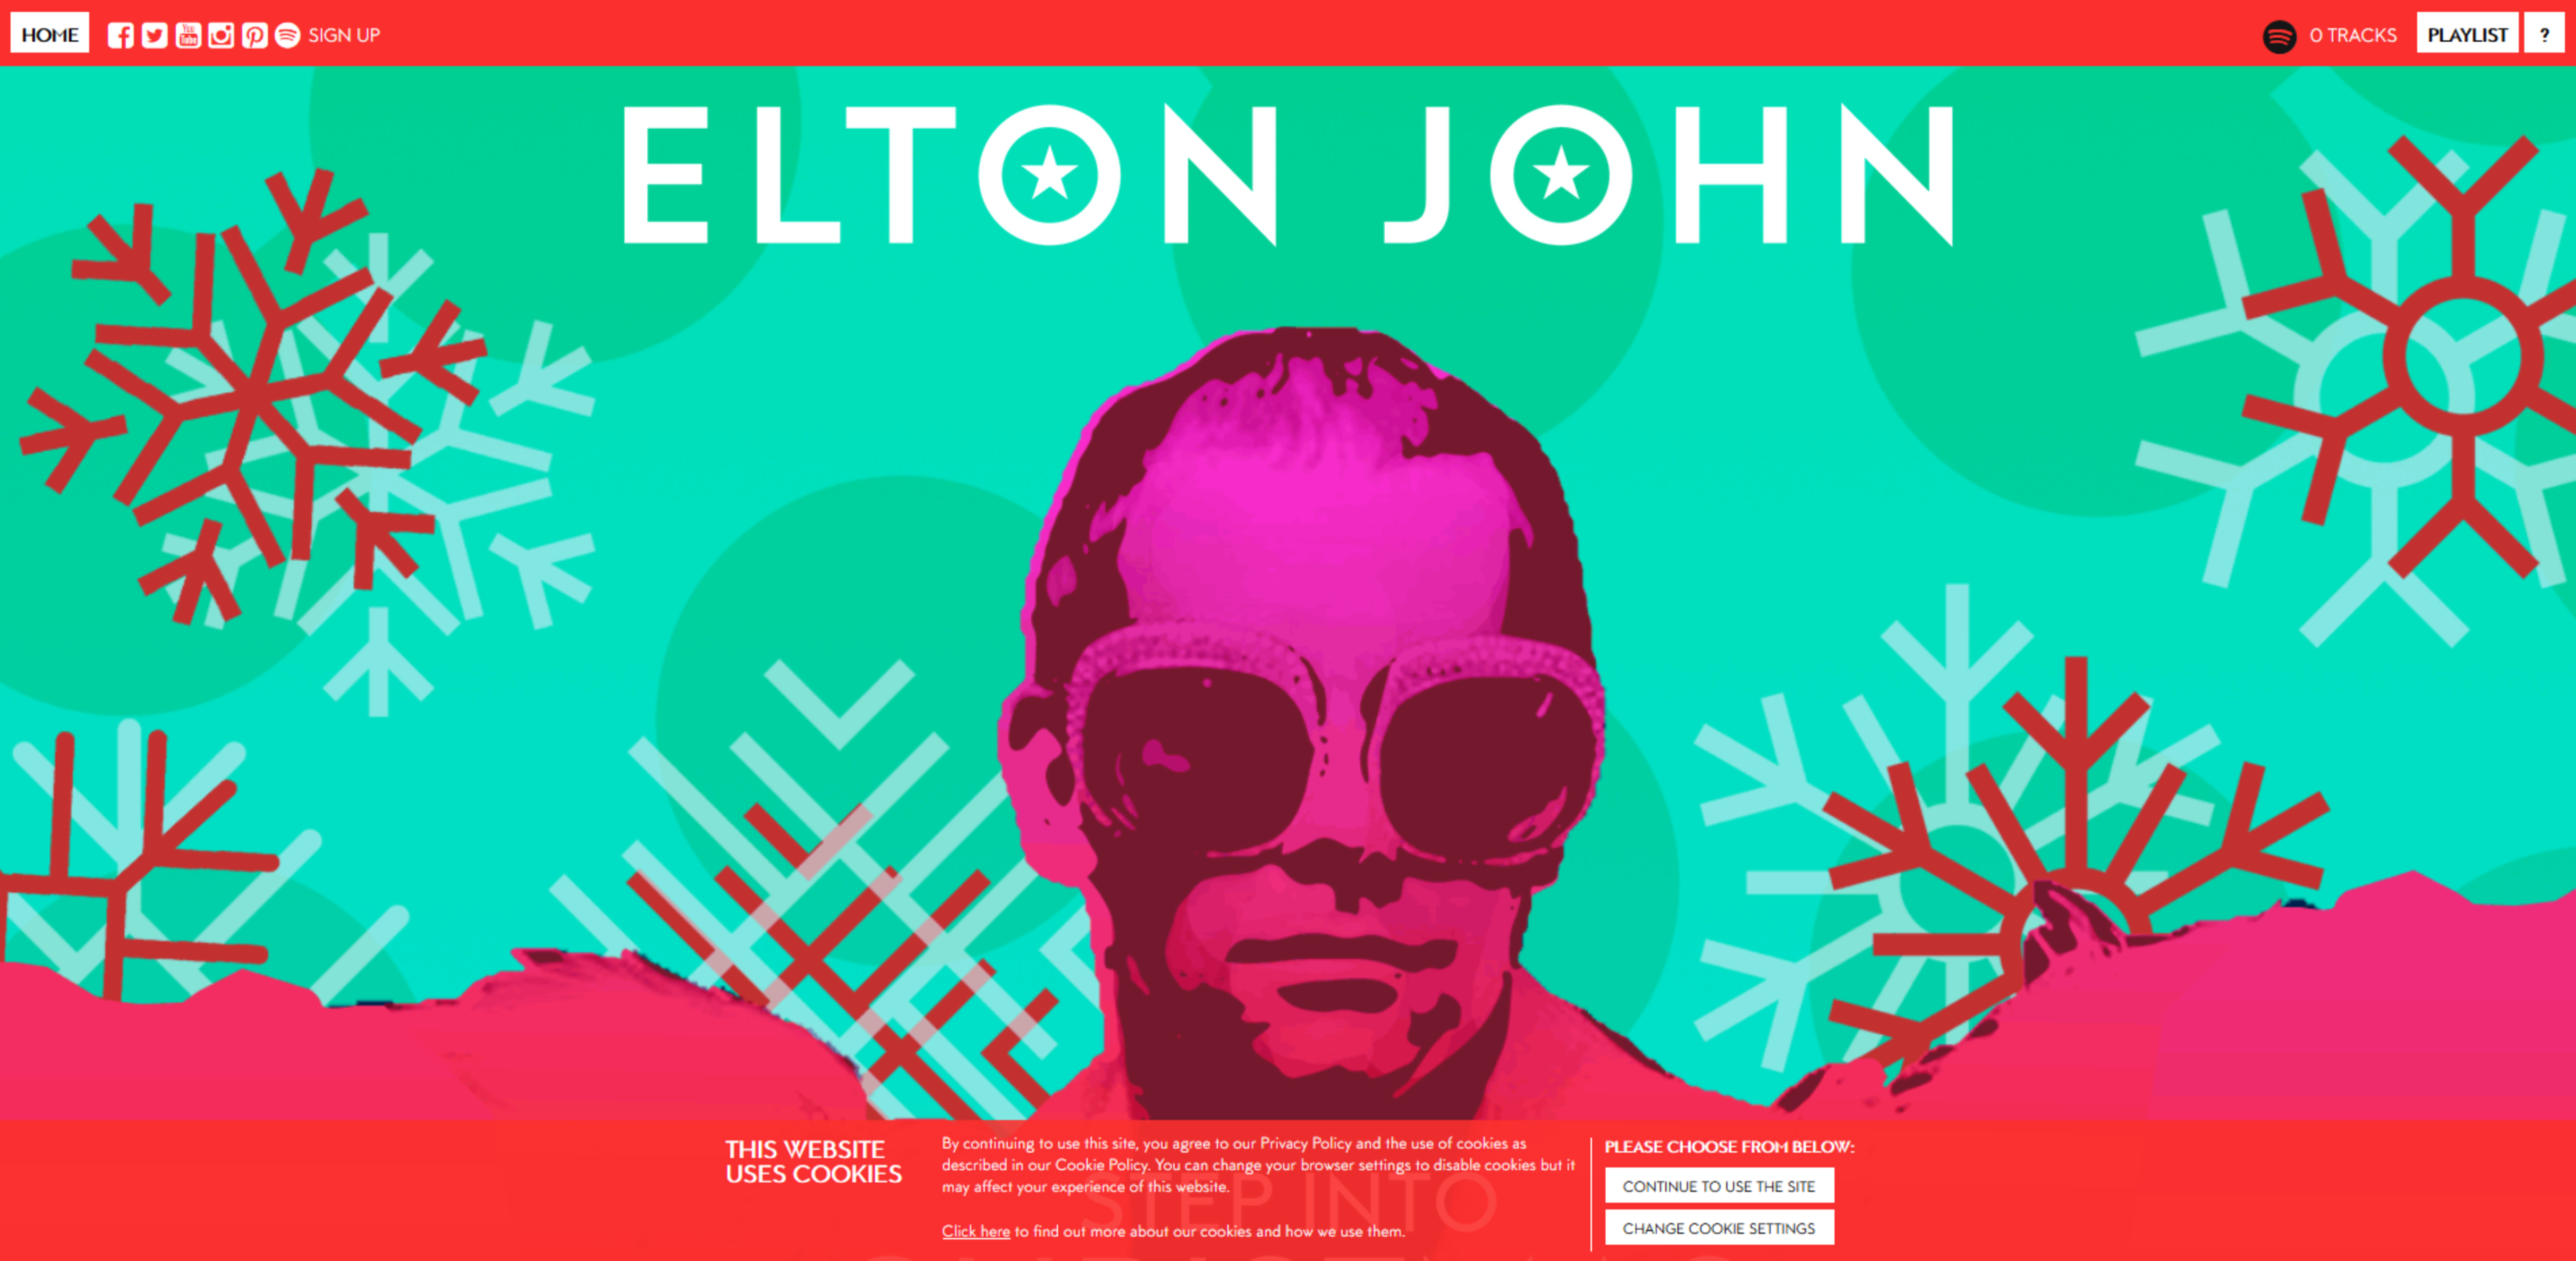 elton john step into christmas spotify playlist generator